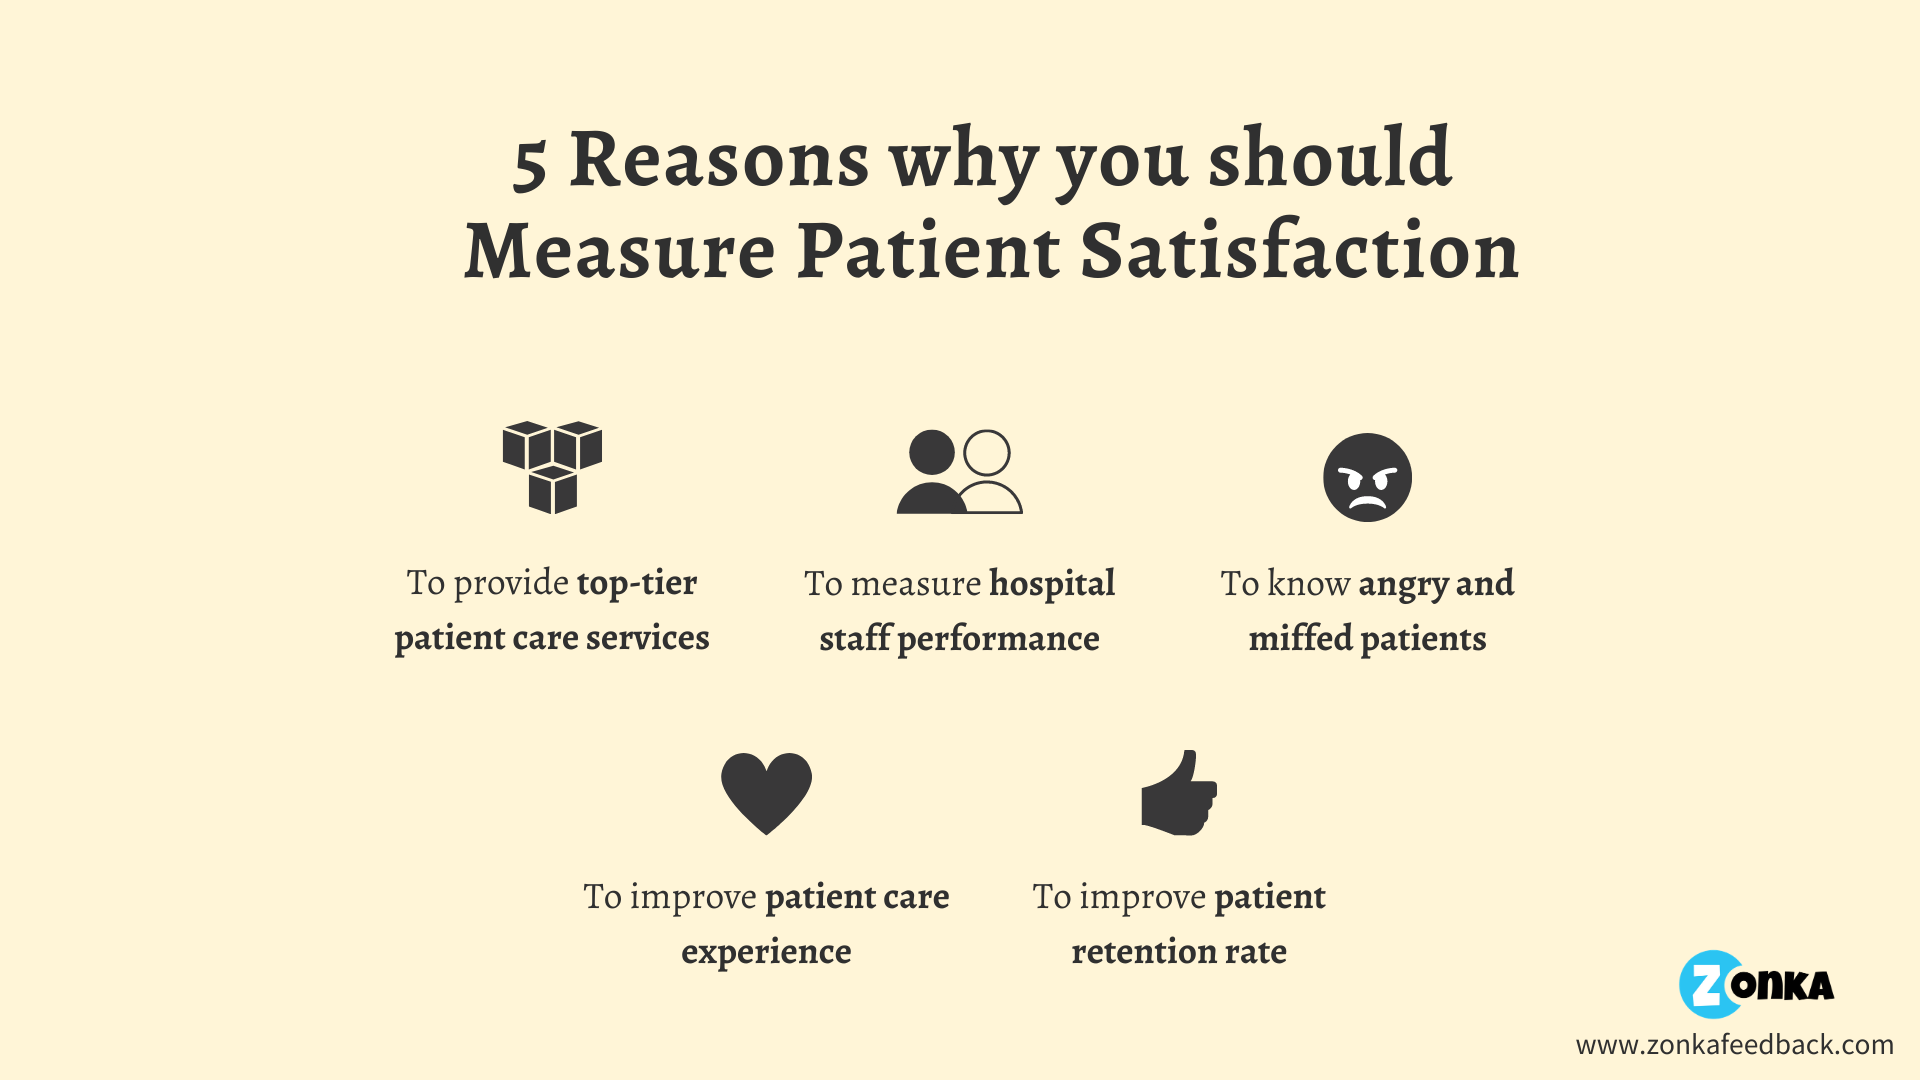 5-reasons-why-measure-patient-satisfaction